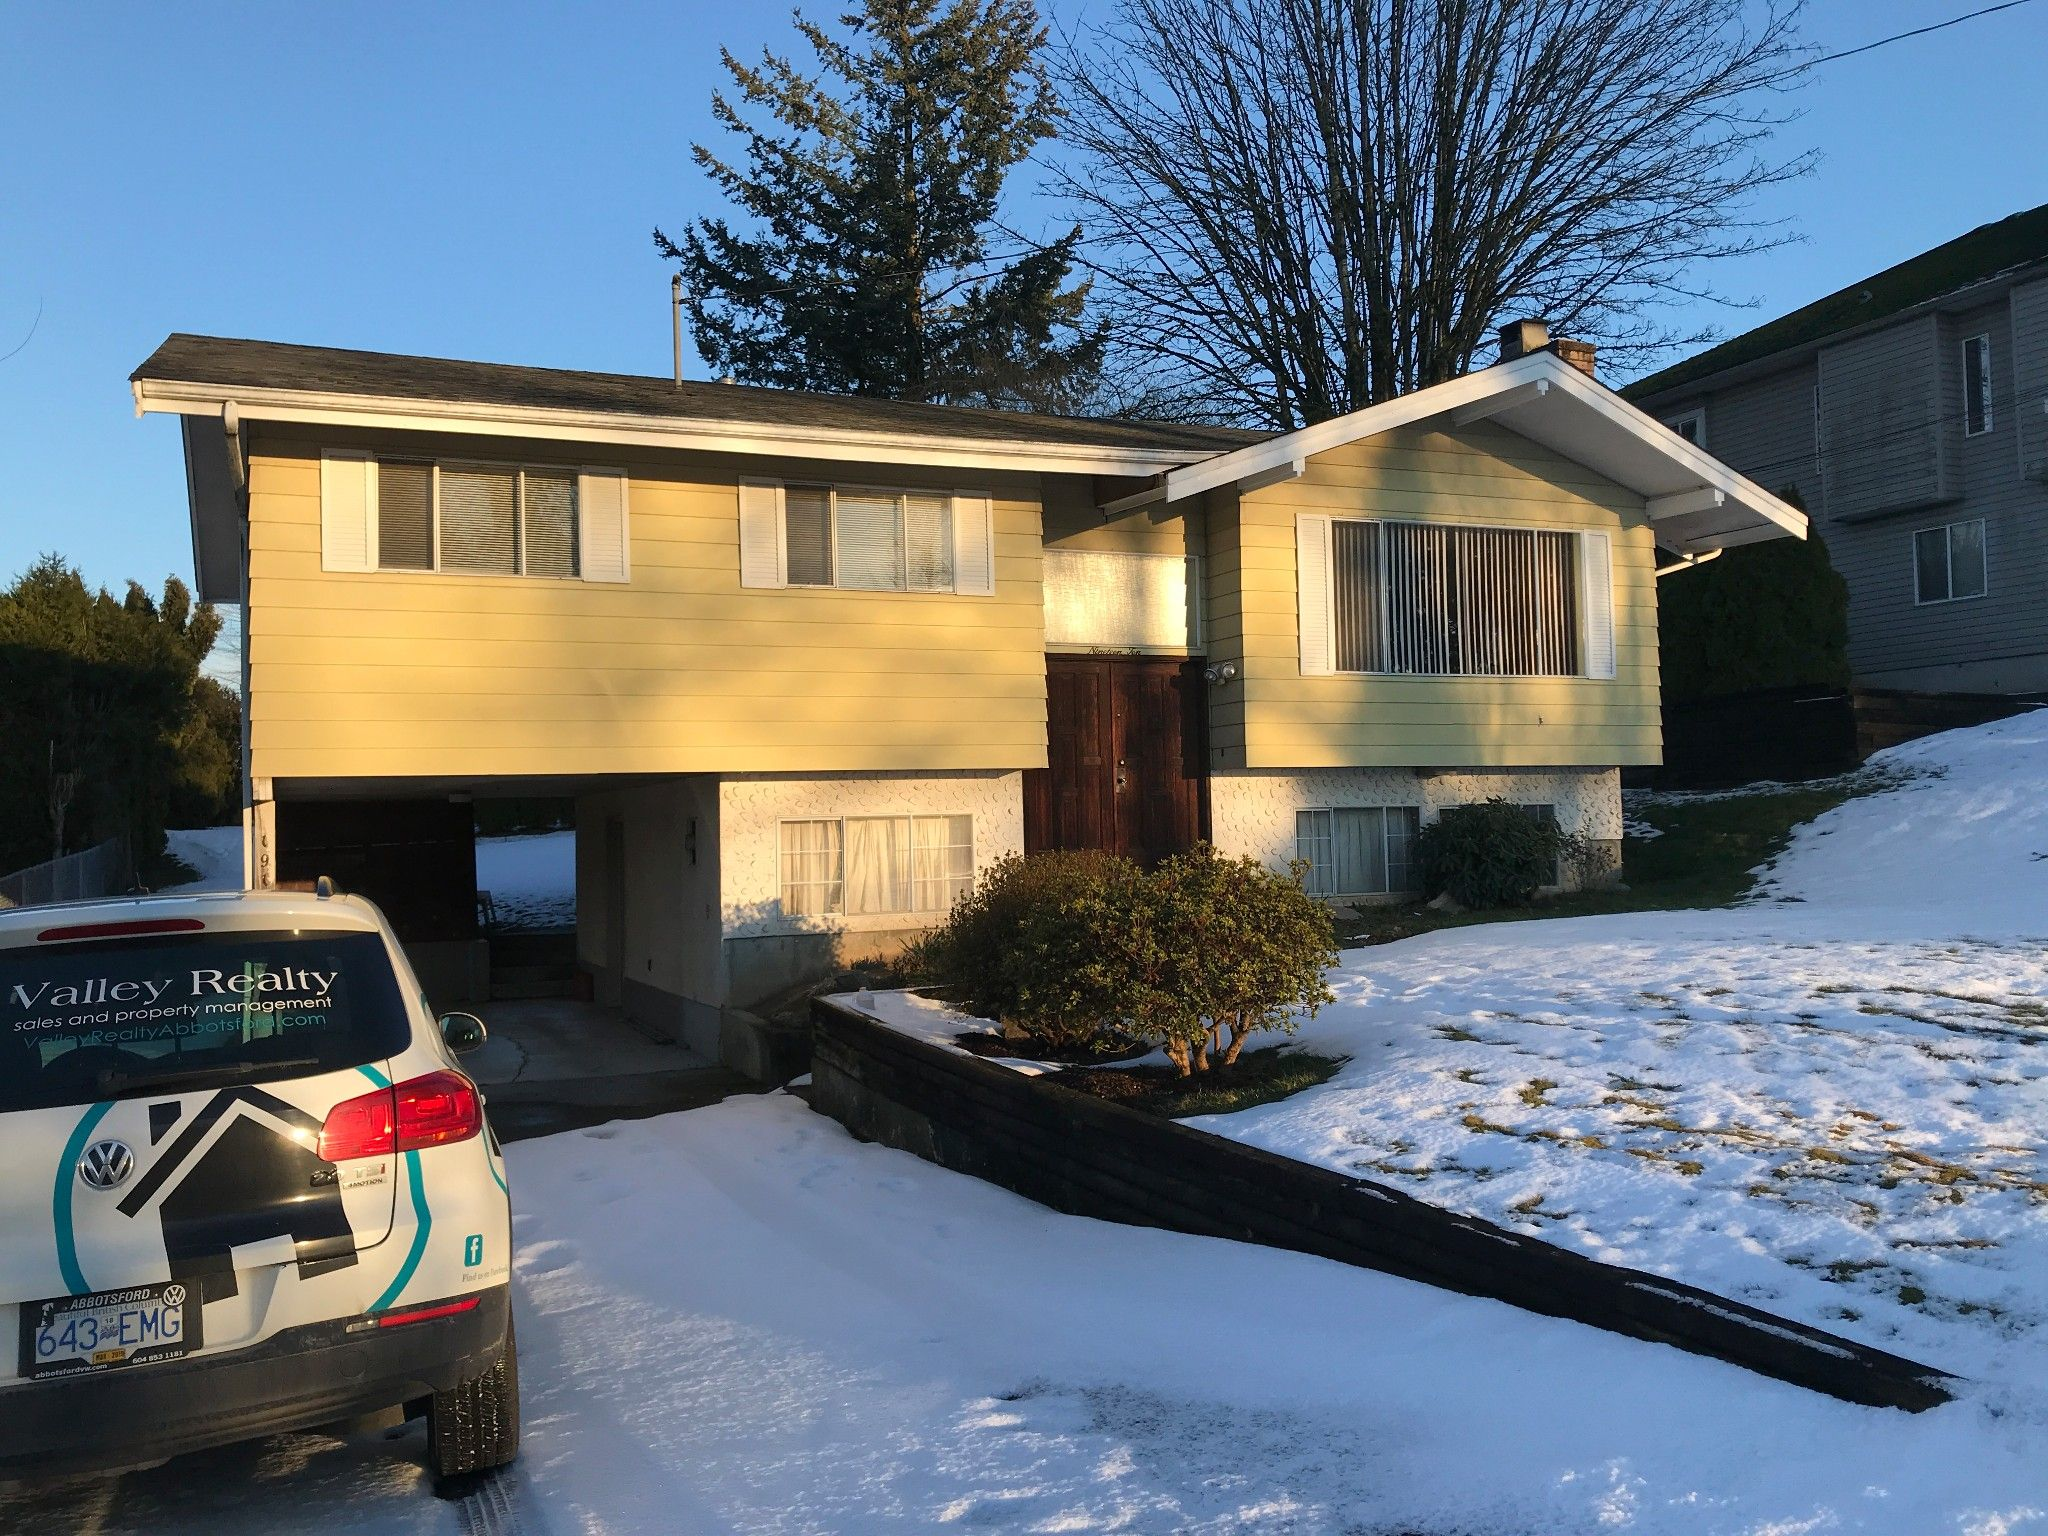 Main Photo: 1910 McKenzie Rd. in Abbotsford: Central Abbotsford House for rent